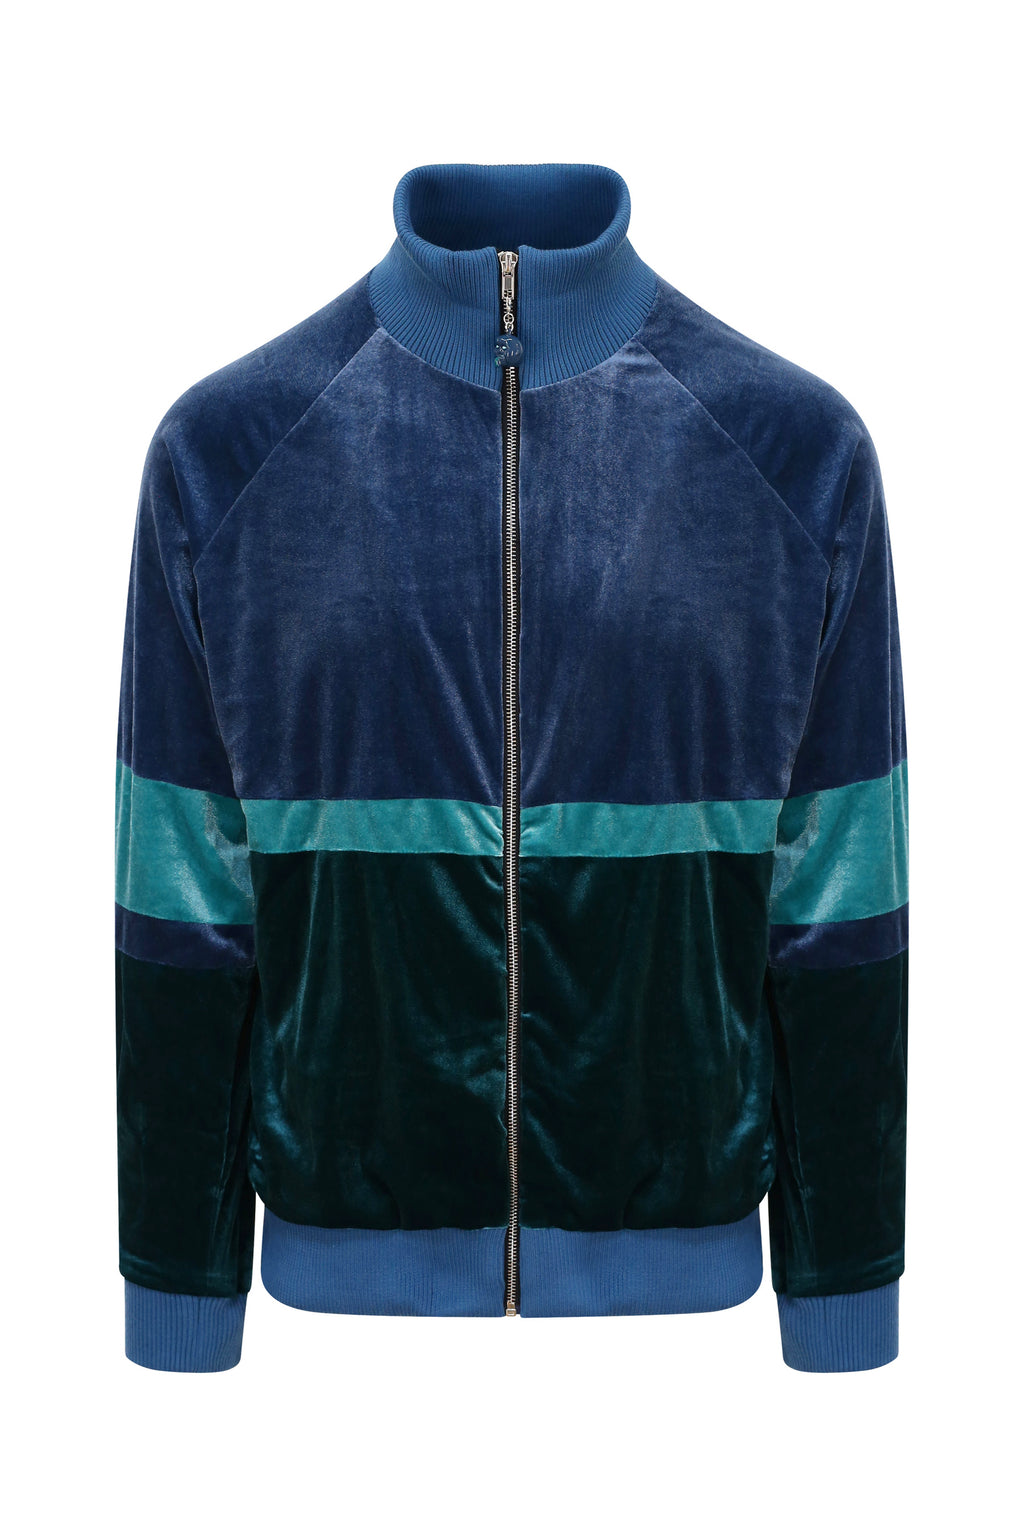 Adrian Unisex Green and Blue Velour Tracksuit Jacket